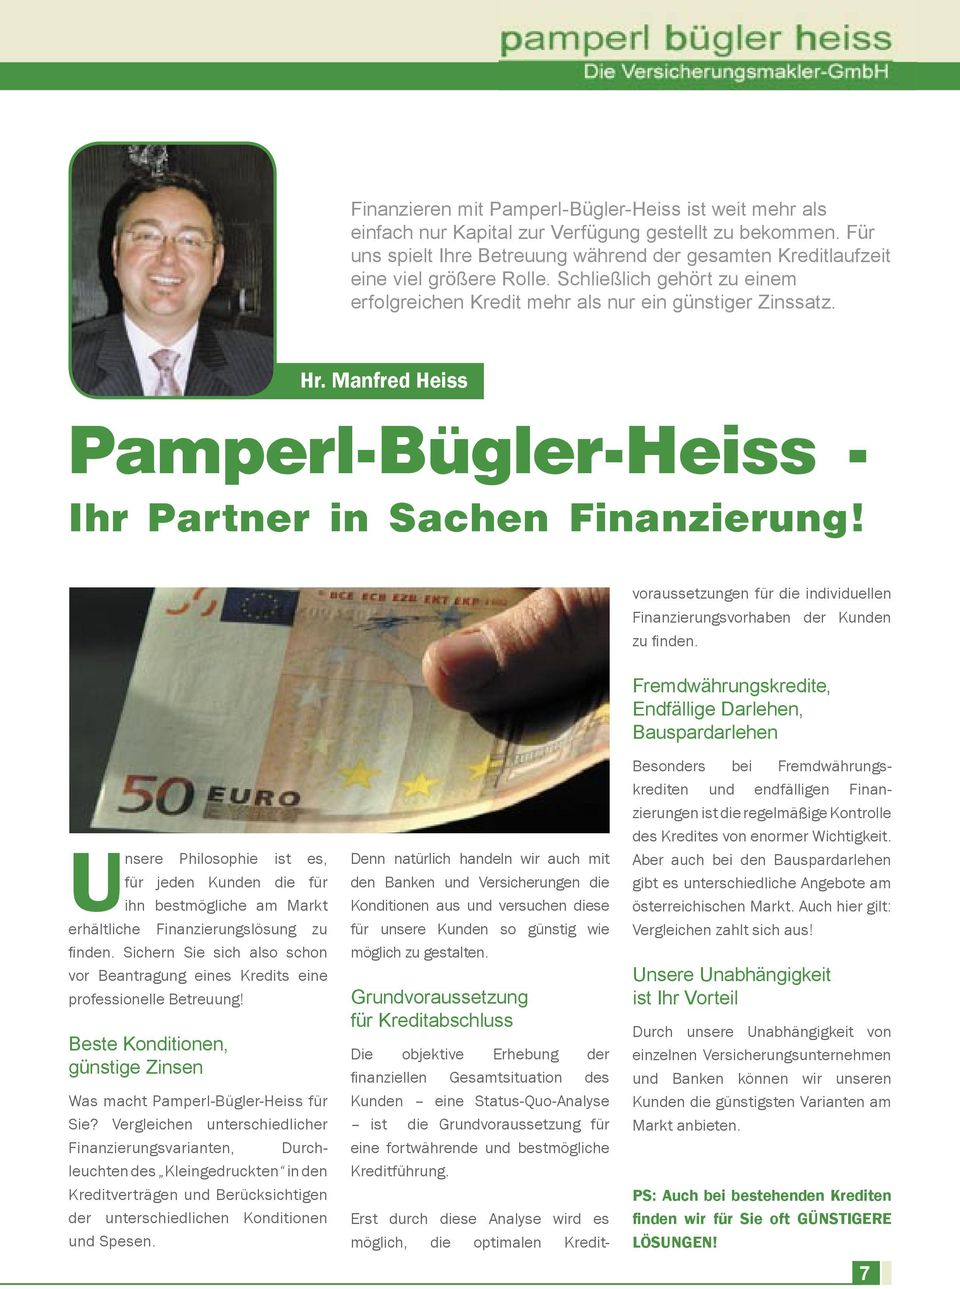 Manfred Heiss Pamperl-Bügler-Heiss - Ihr Partner in Sachen Finanzierung!